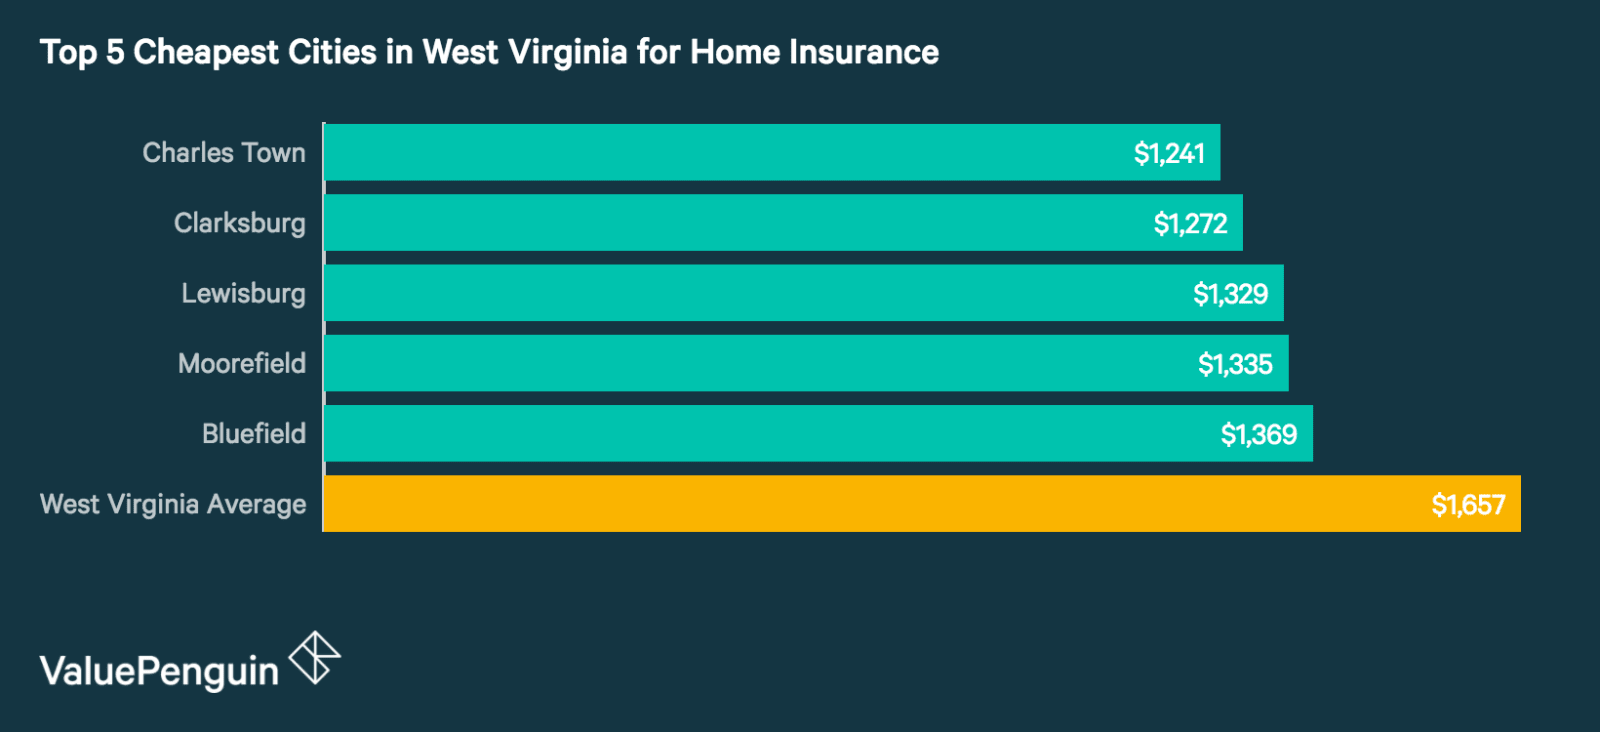 Top 5 Cheapest Cities in West Virginia for Homeowners Insurance